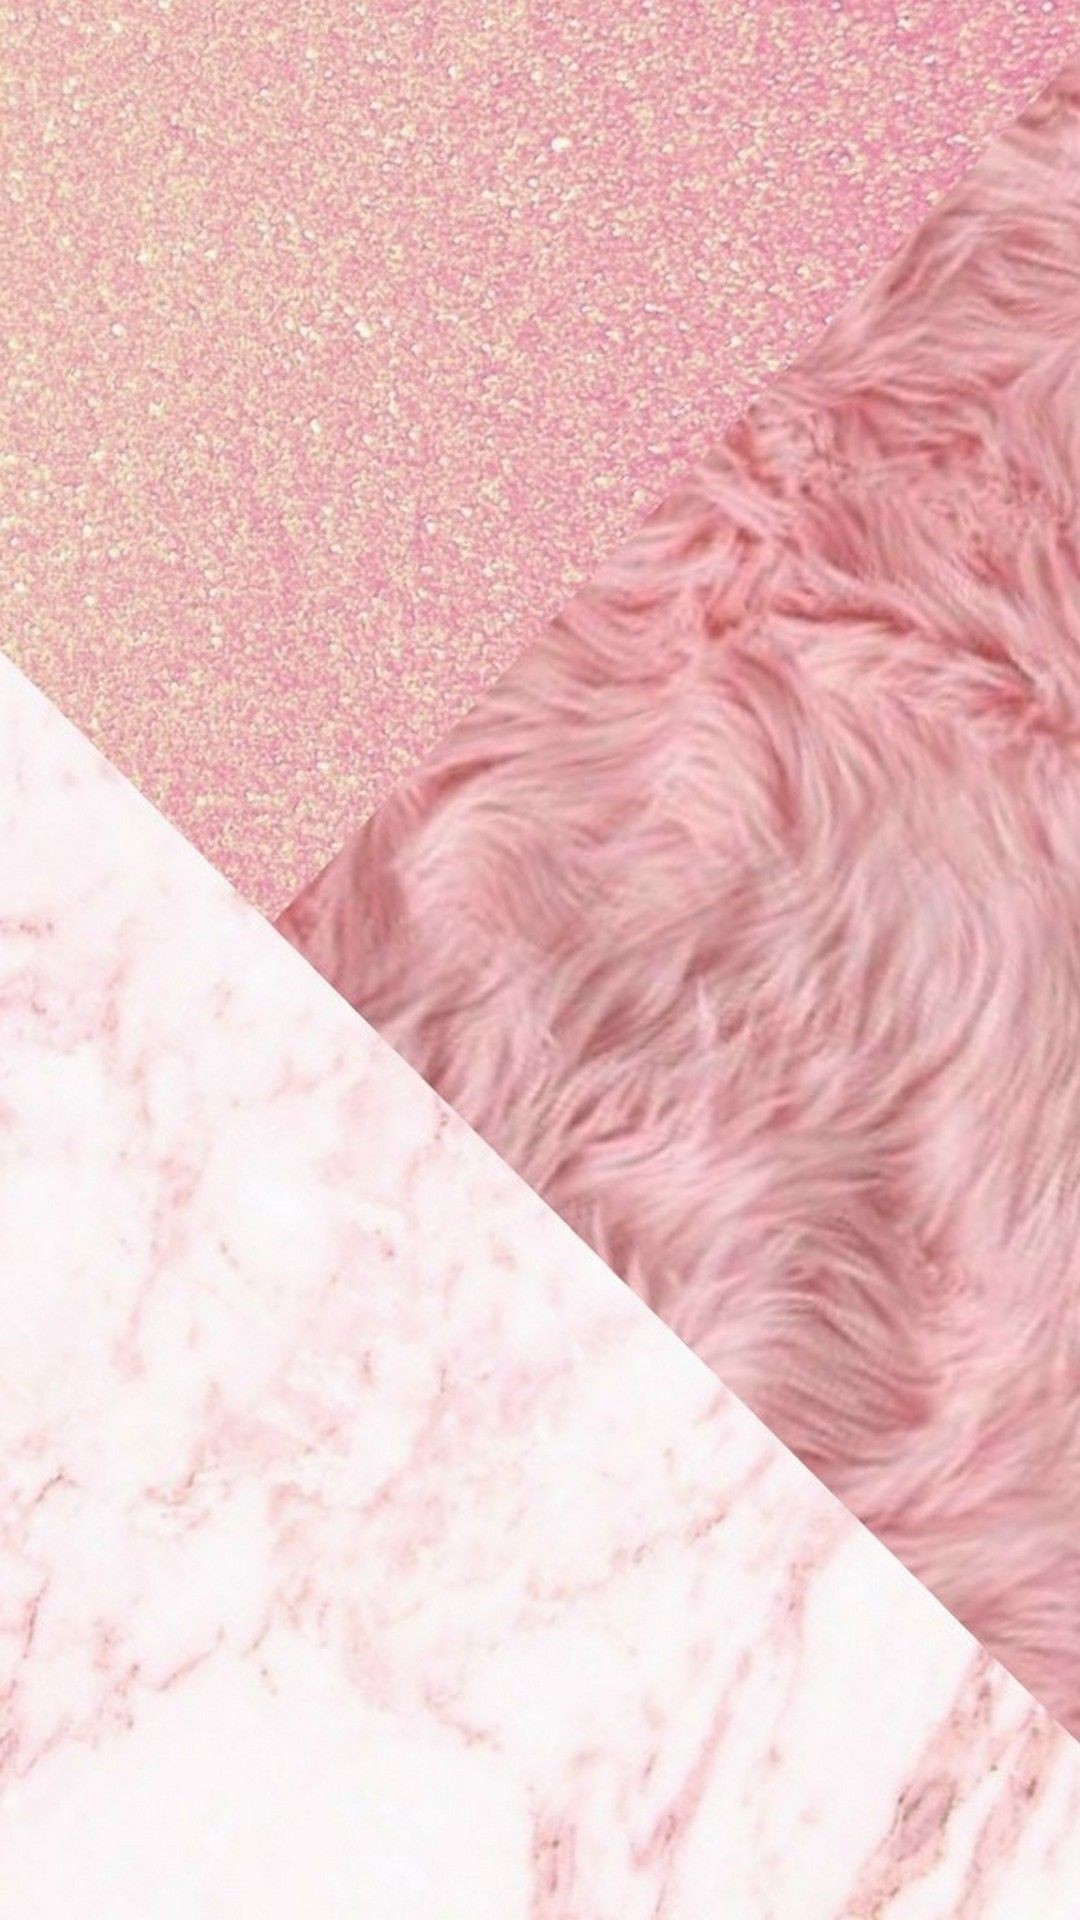 Pink Fur Wallpapers For Bedrooms 46 Background Pictures